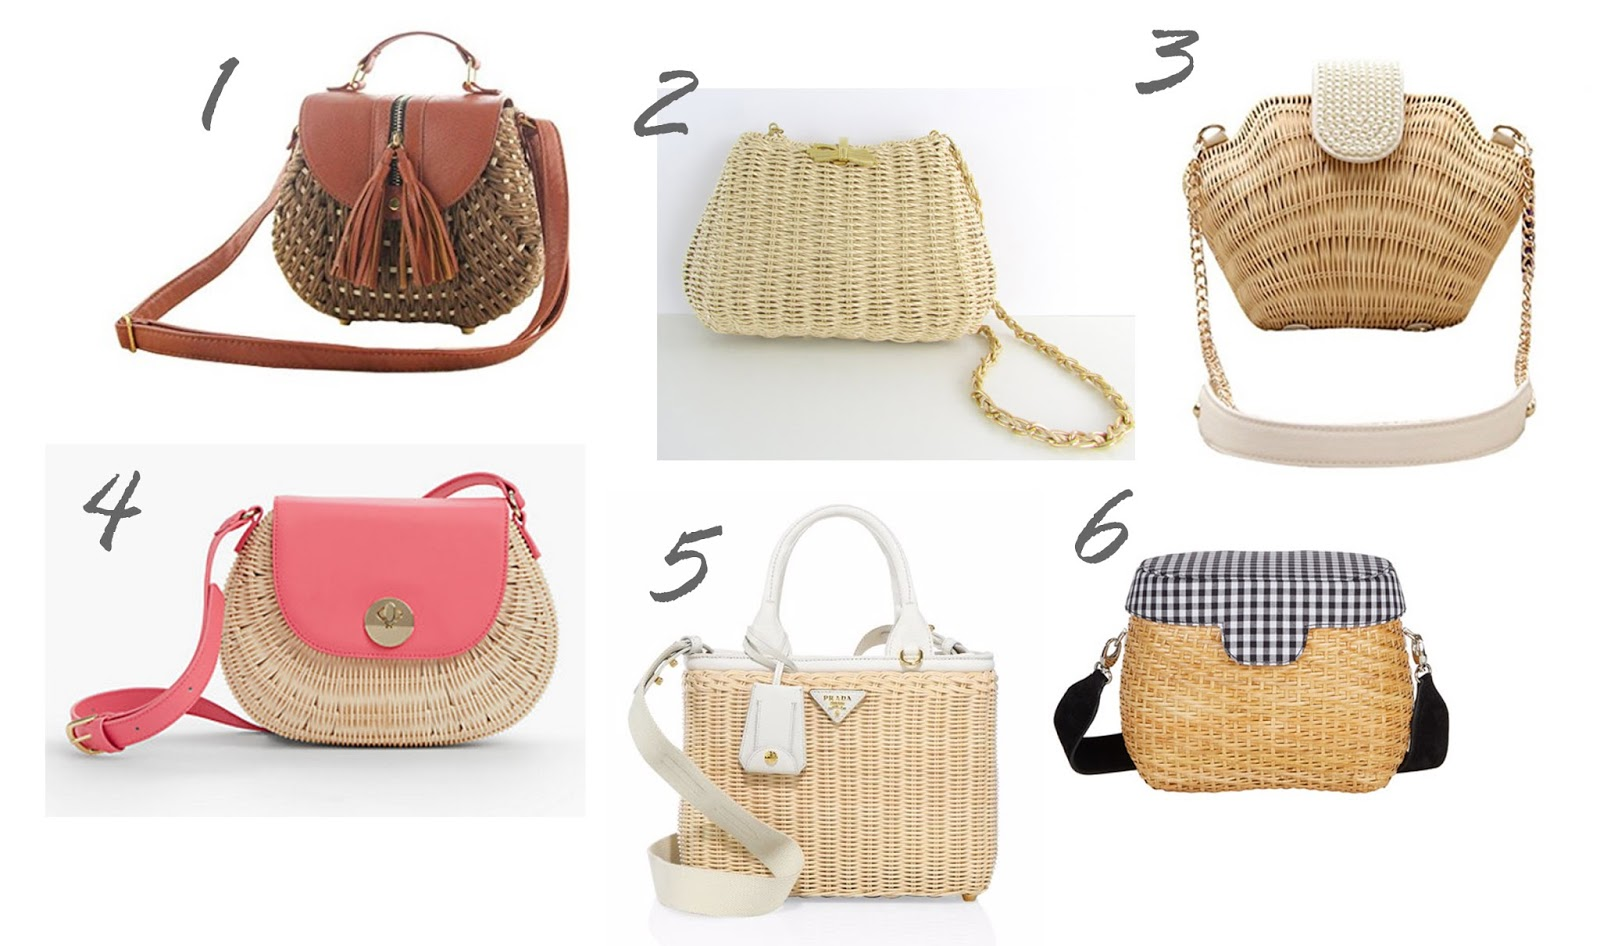 Wicker crossbody handbags, wicker shoulder bags, trendy wicker purses, crossbody beach bags and gingham basket handbag